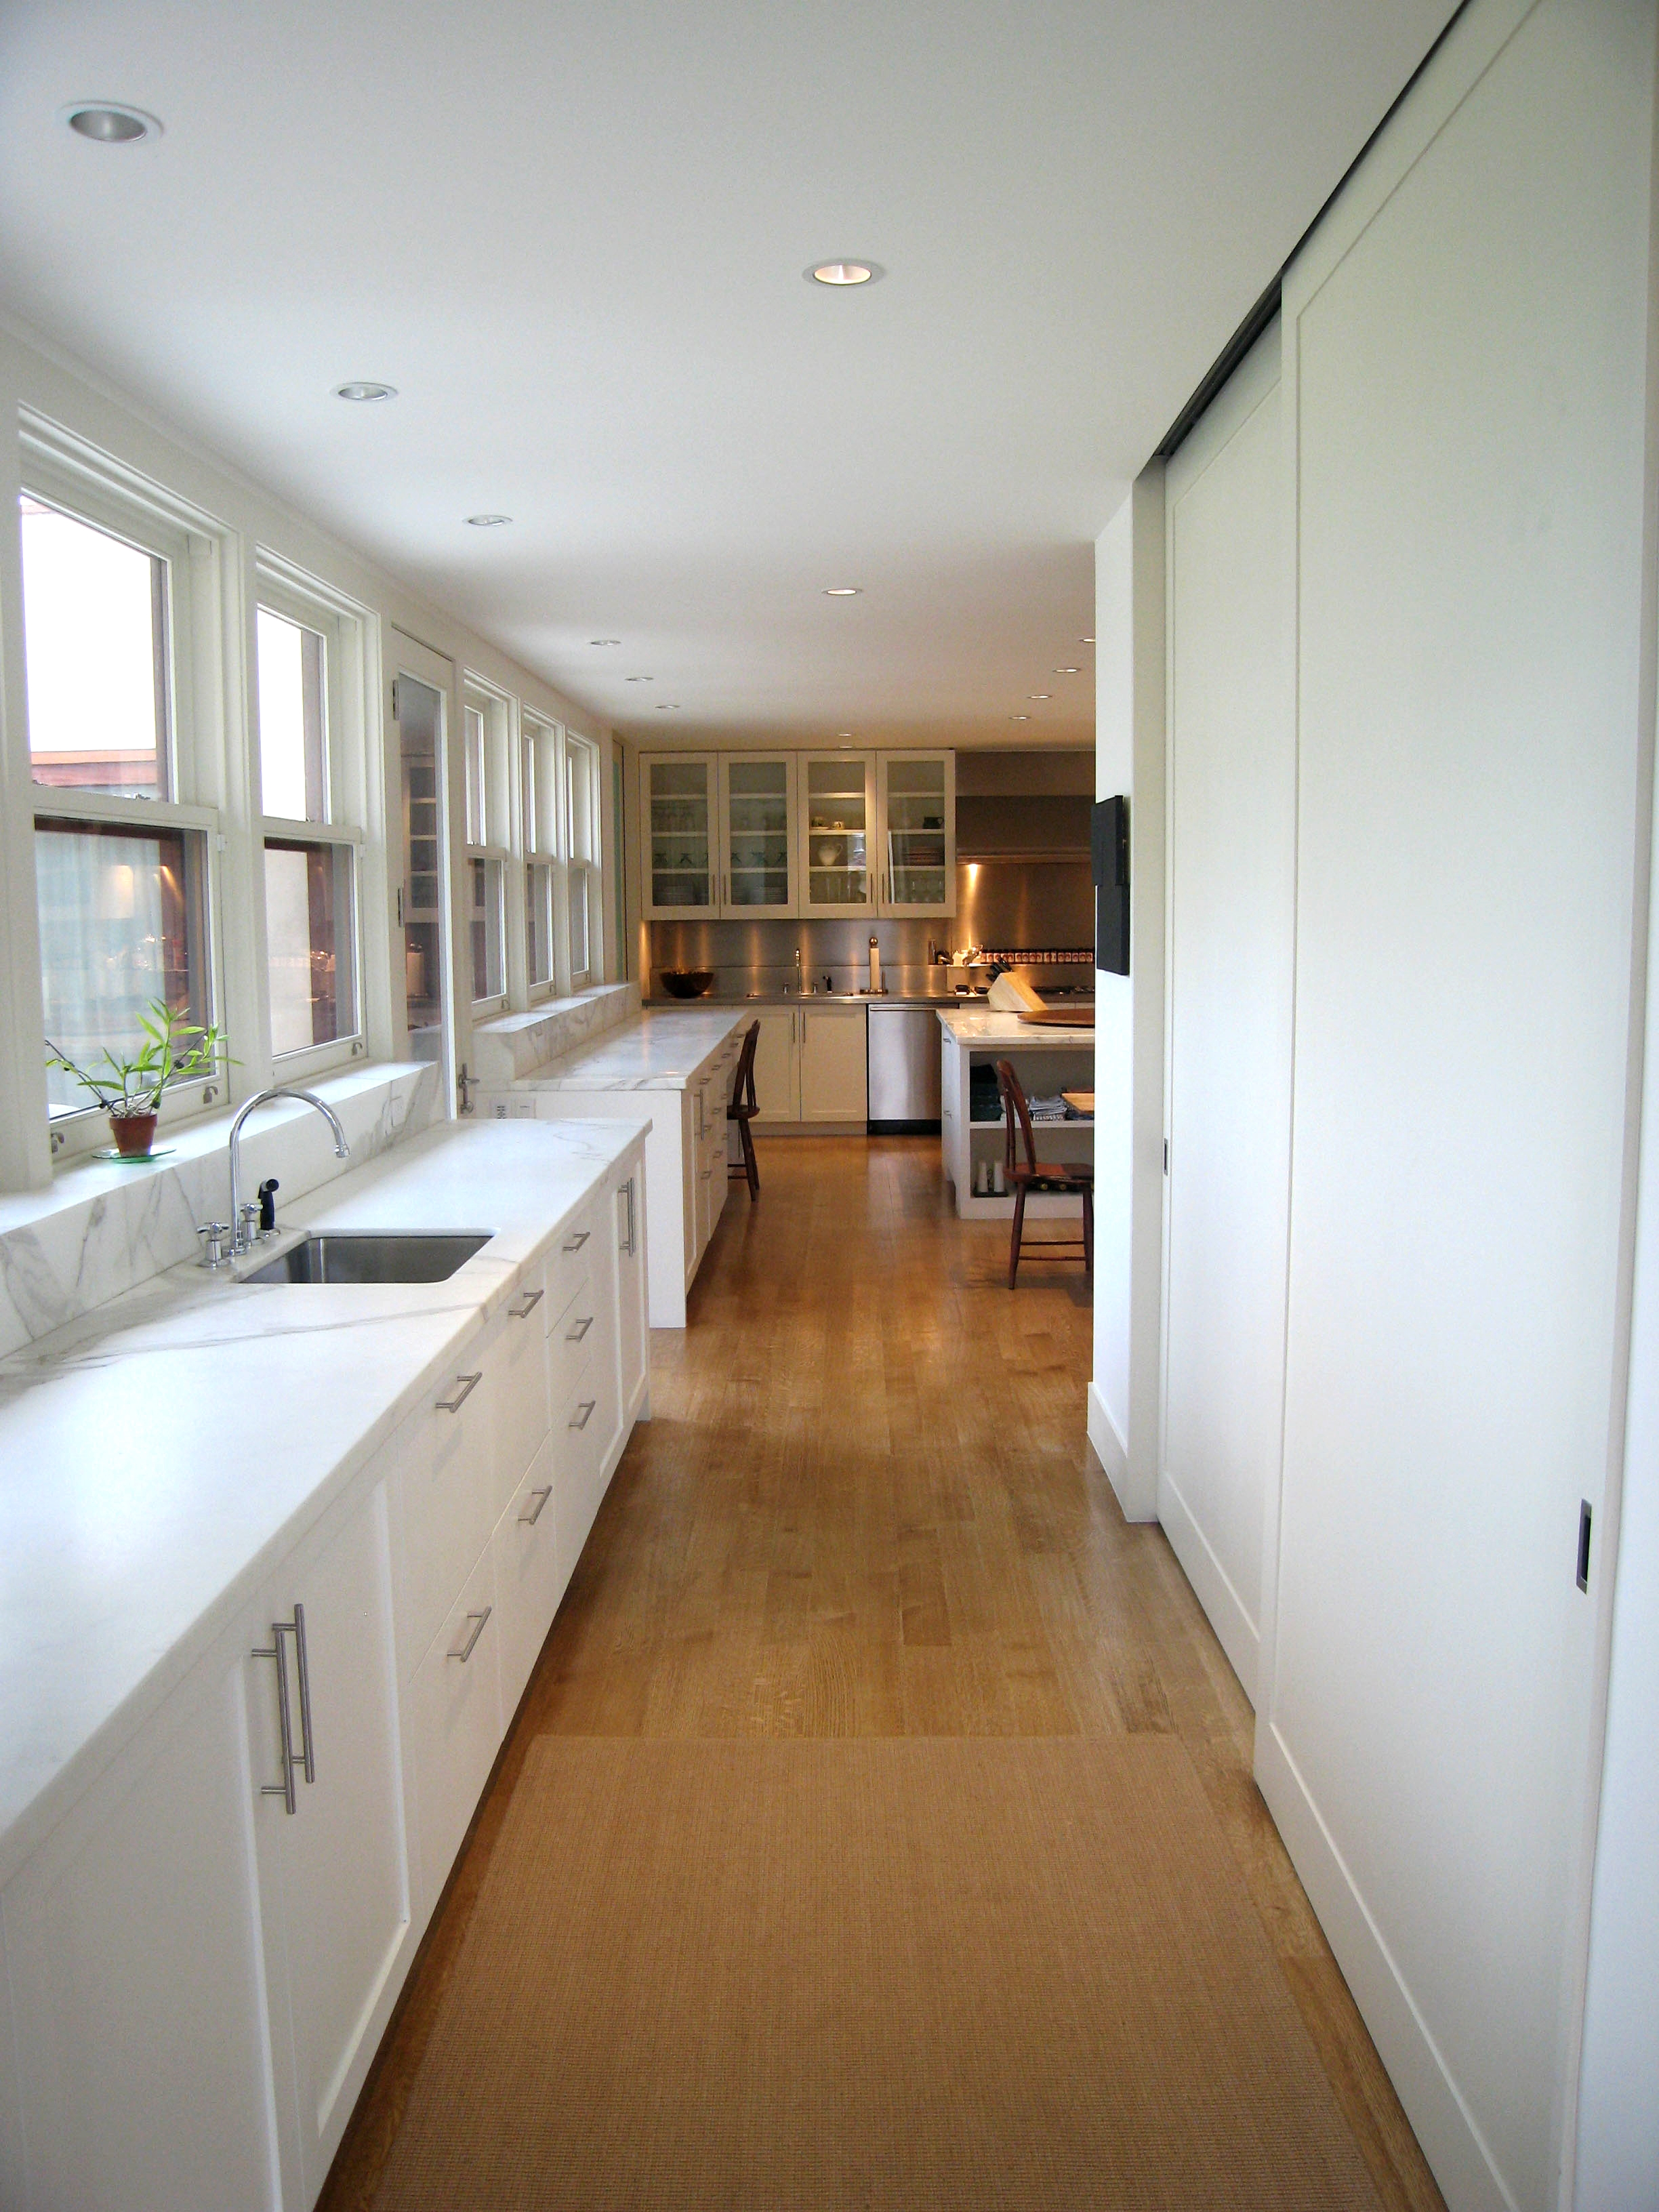 kitchen from side entry.jpg